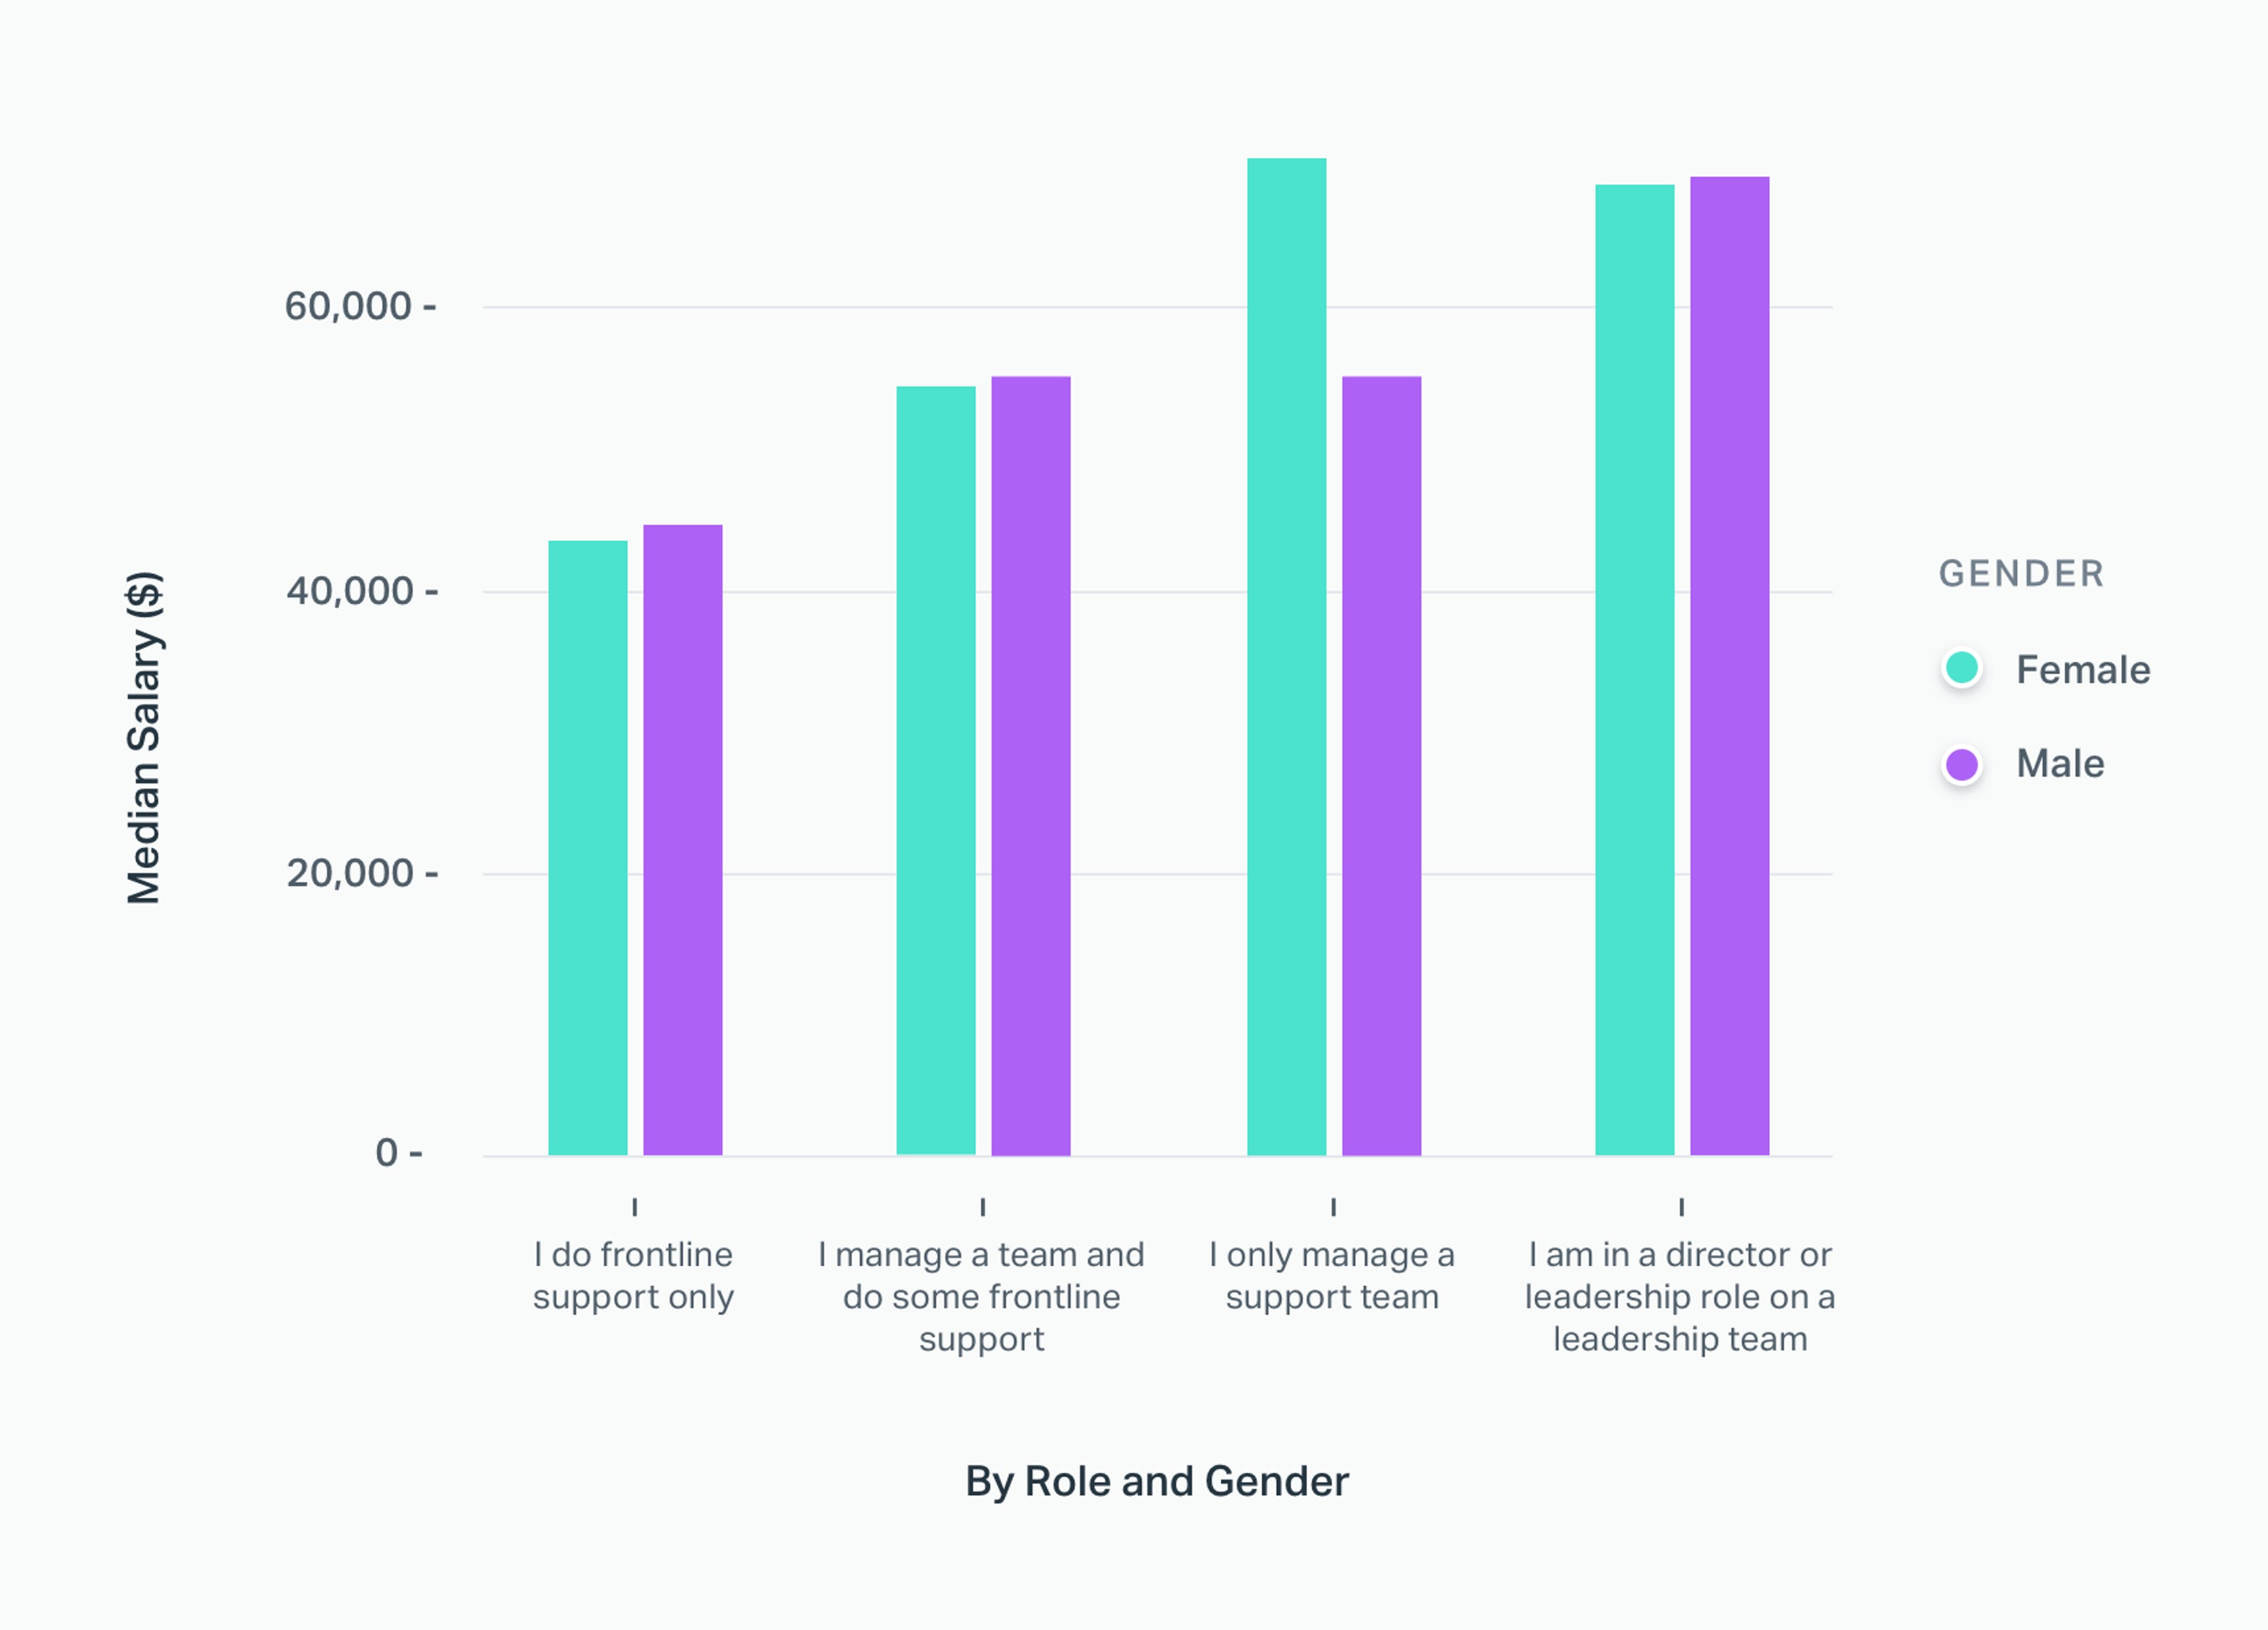 Salary by Gender and Role